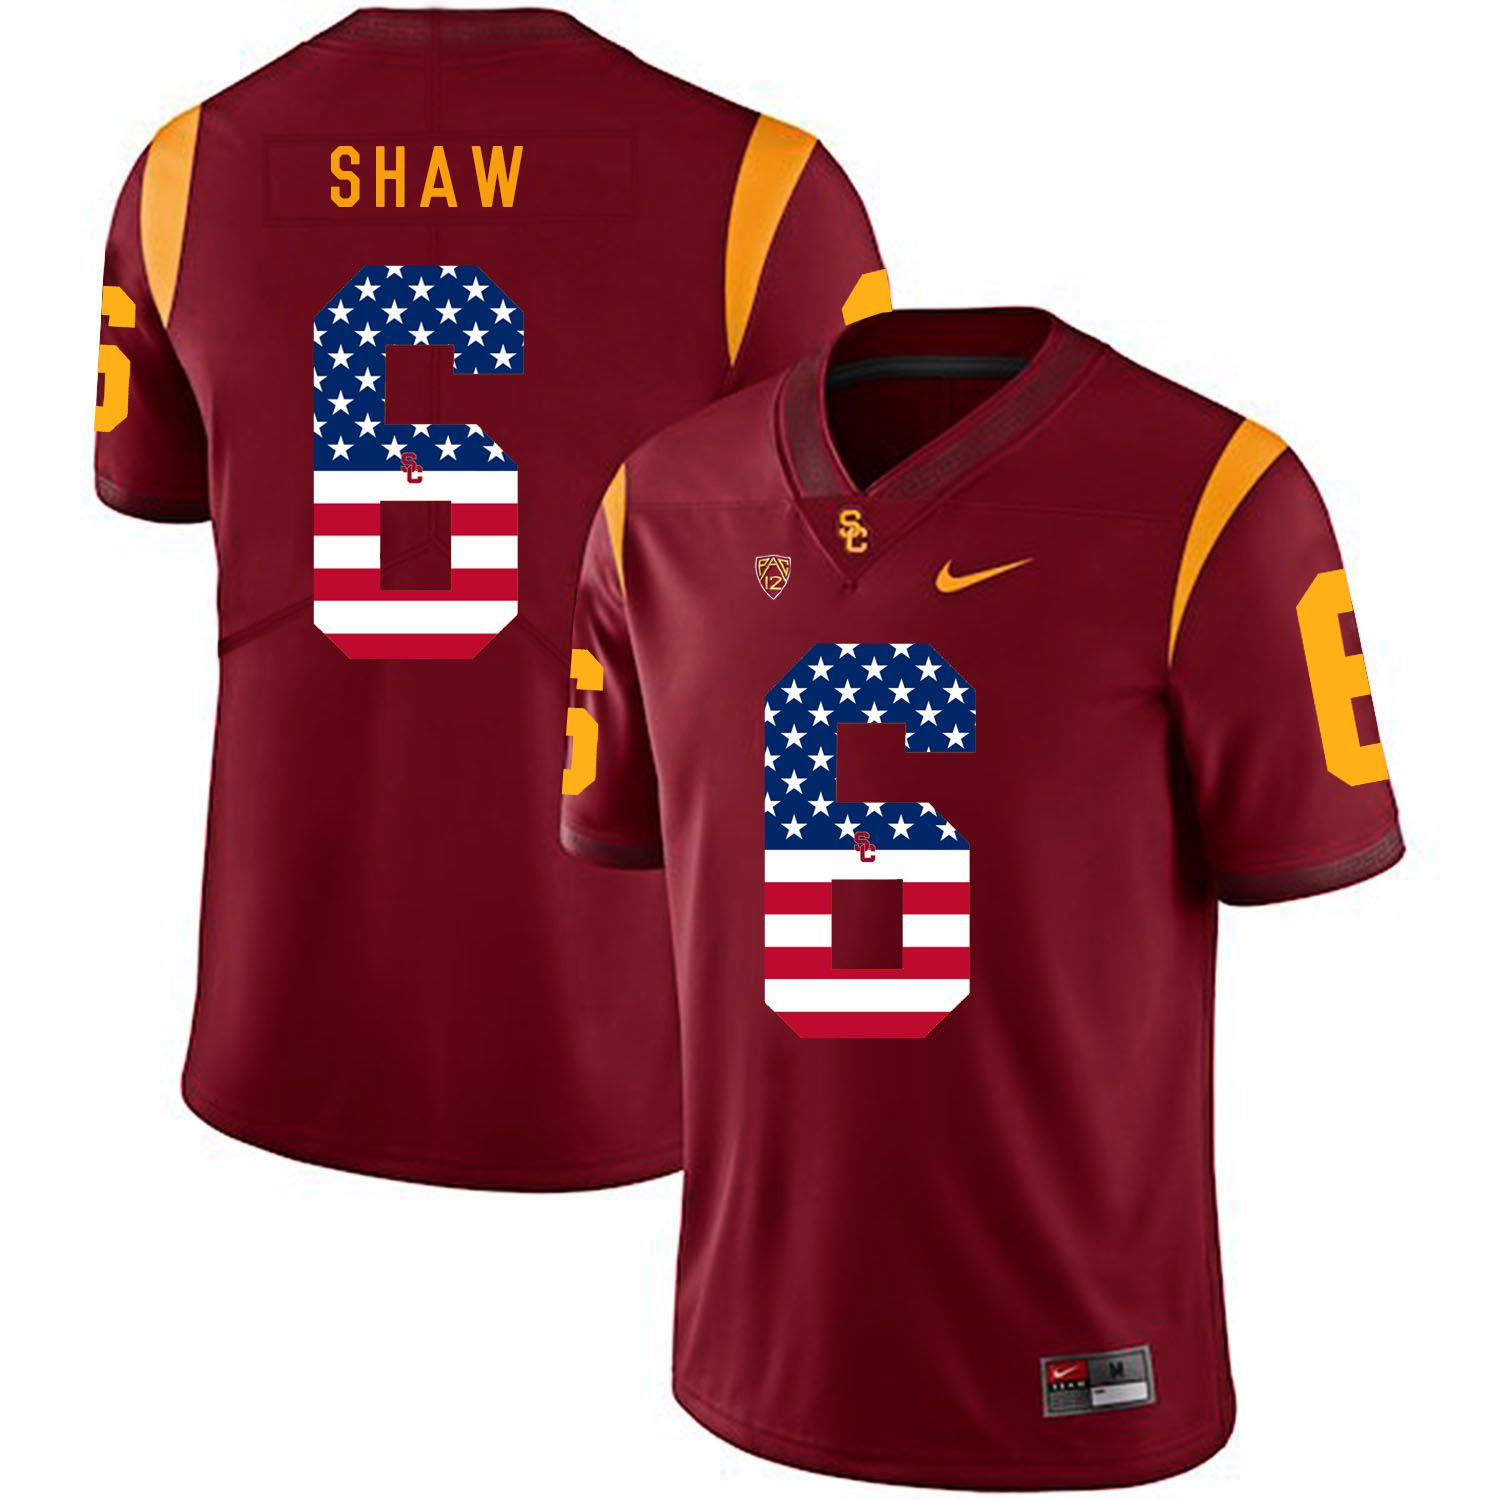 Men USC Trojans 6 Shaw Red Flag Customized NCAA Jerseys